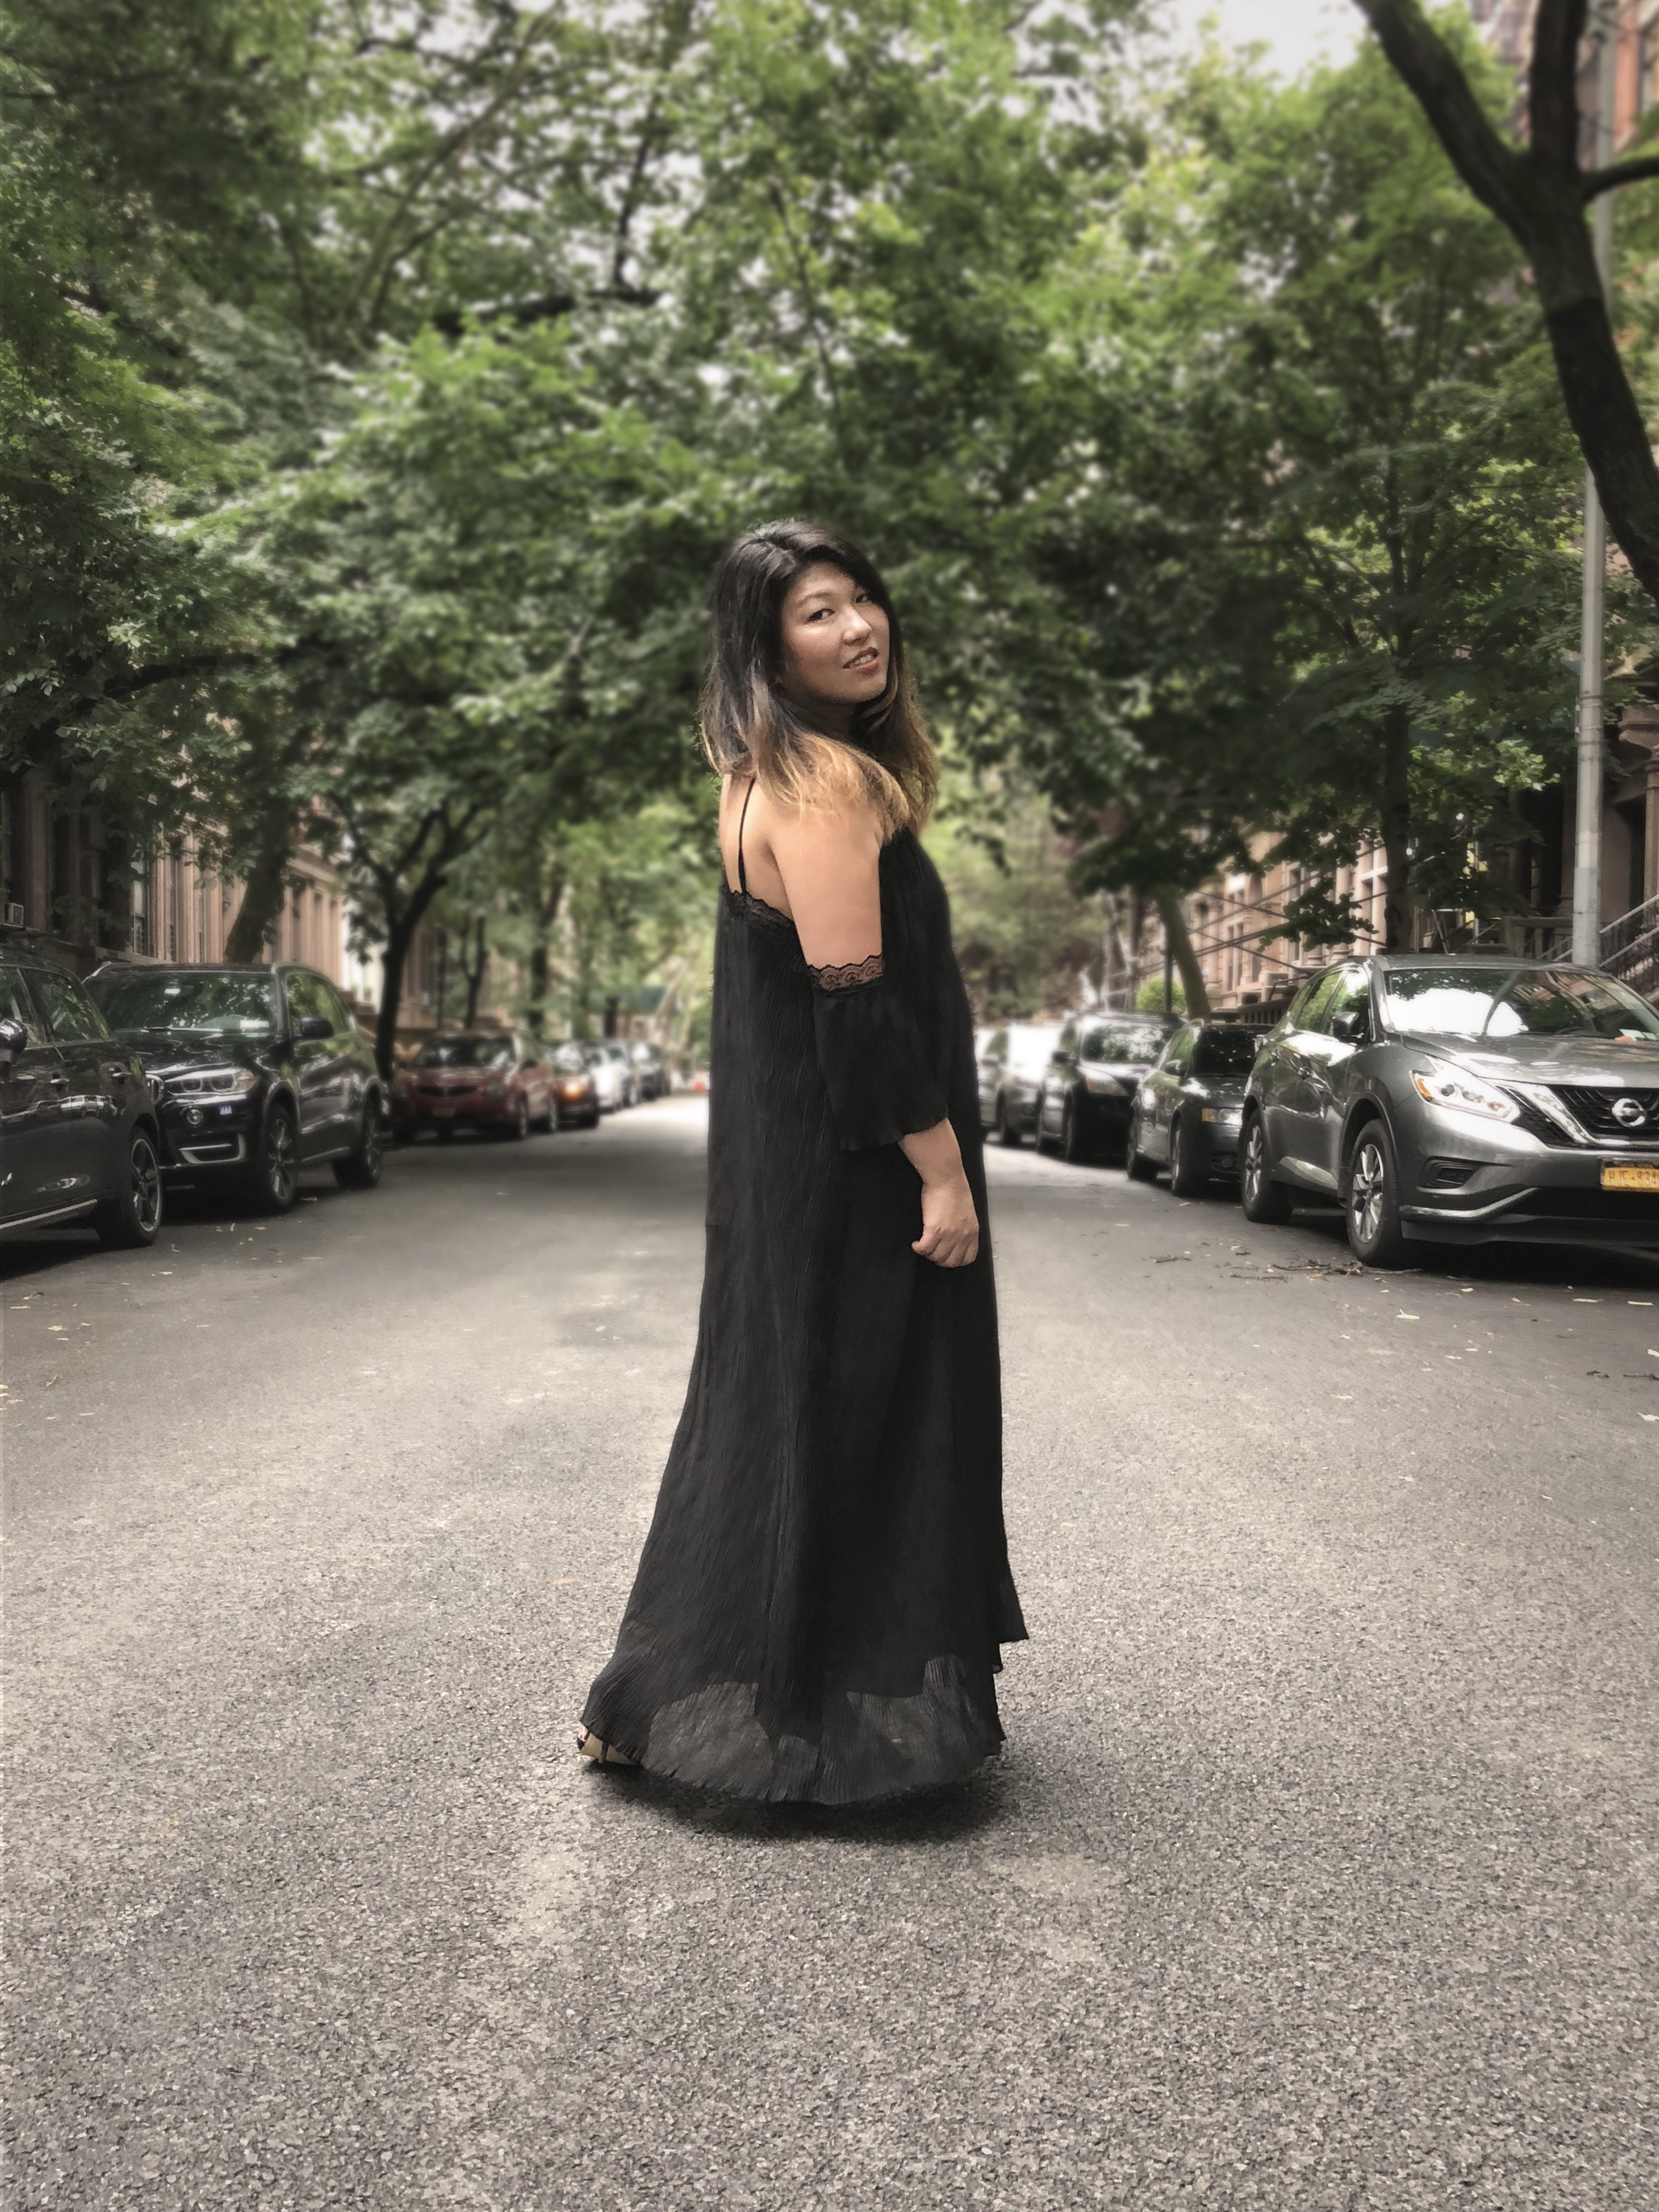 Jolene Delisle, co-founder and creative director of The Working Assembly wearing the black pleated dress by Bastet Noir